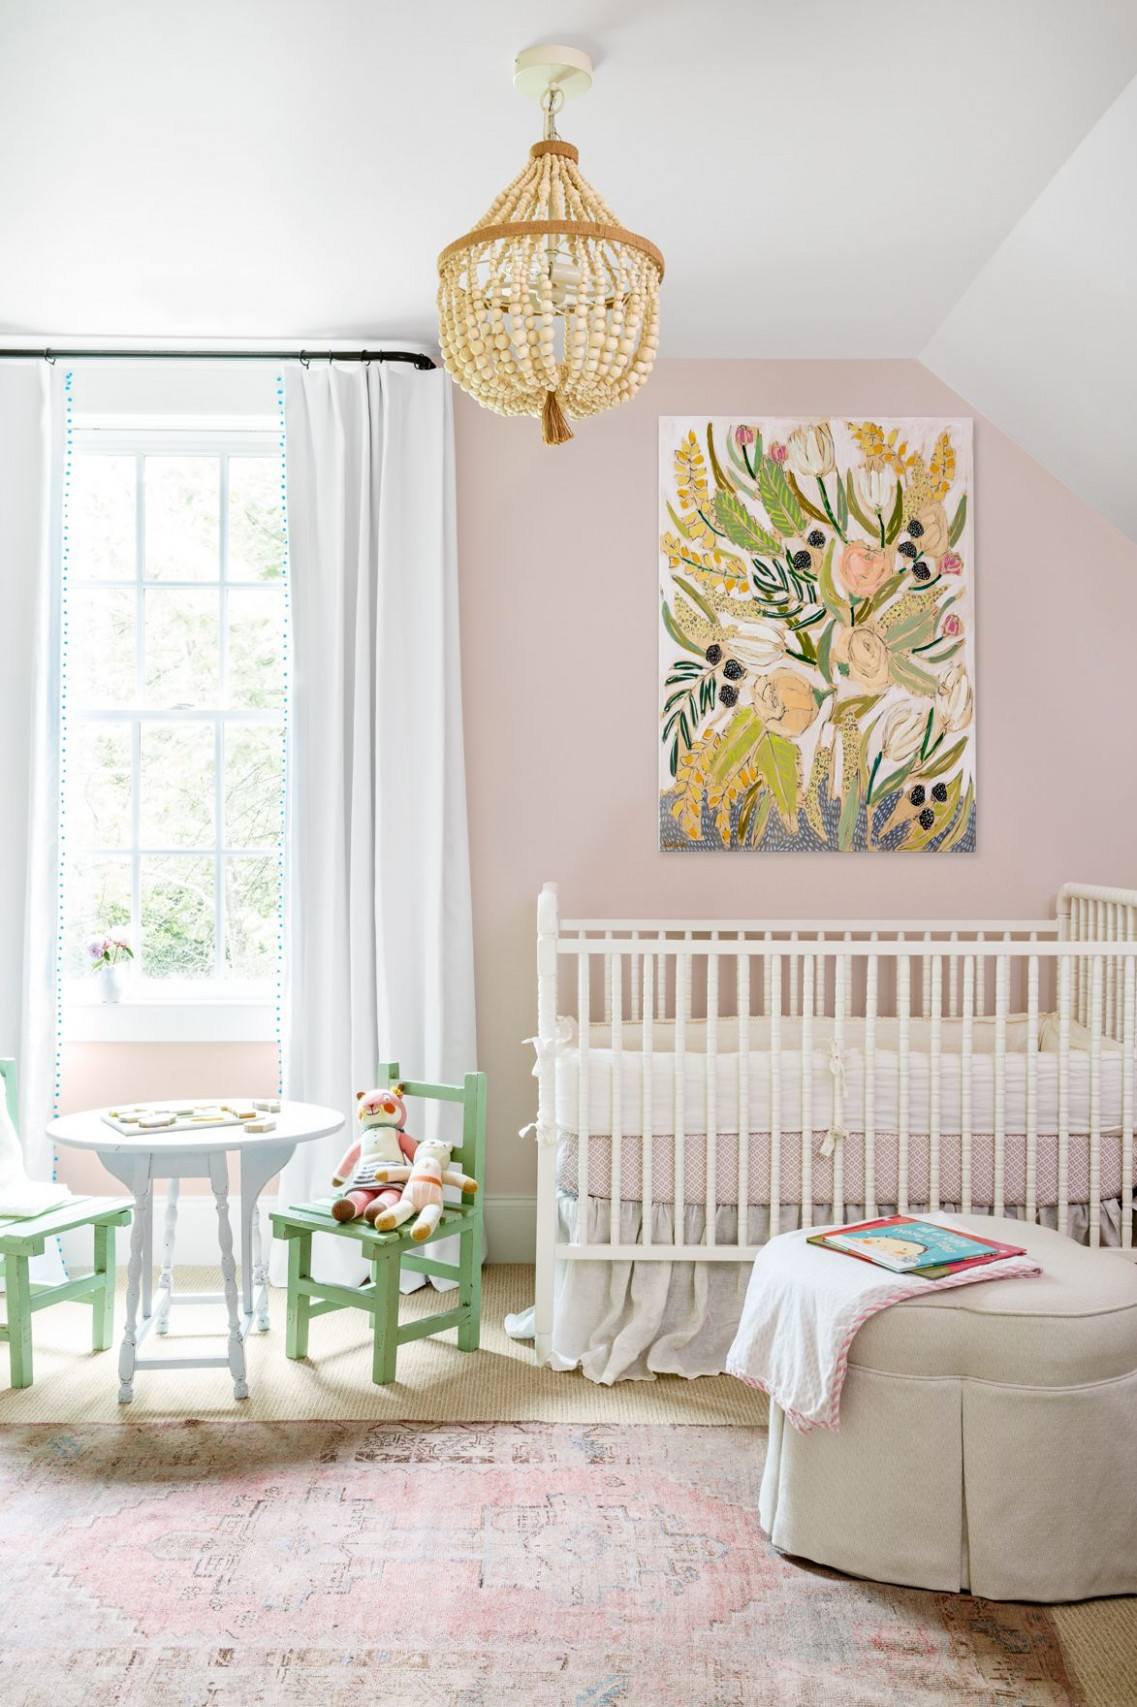 11 Best Baby Room Ideas - Nursery Design, Organization, and  - Baby Room Examples